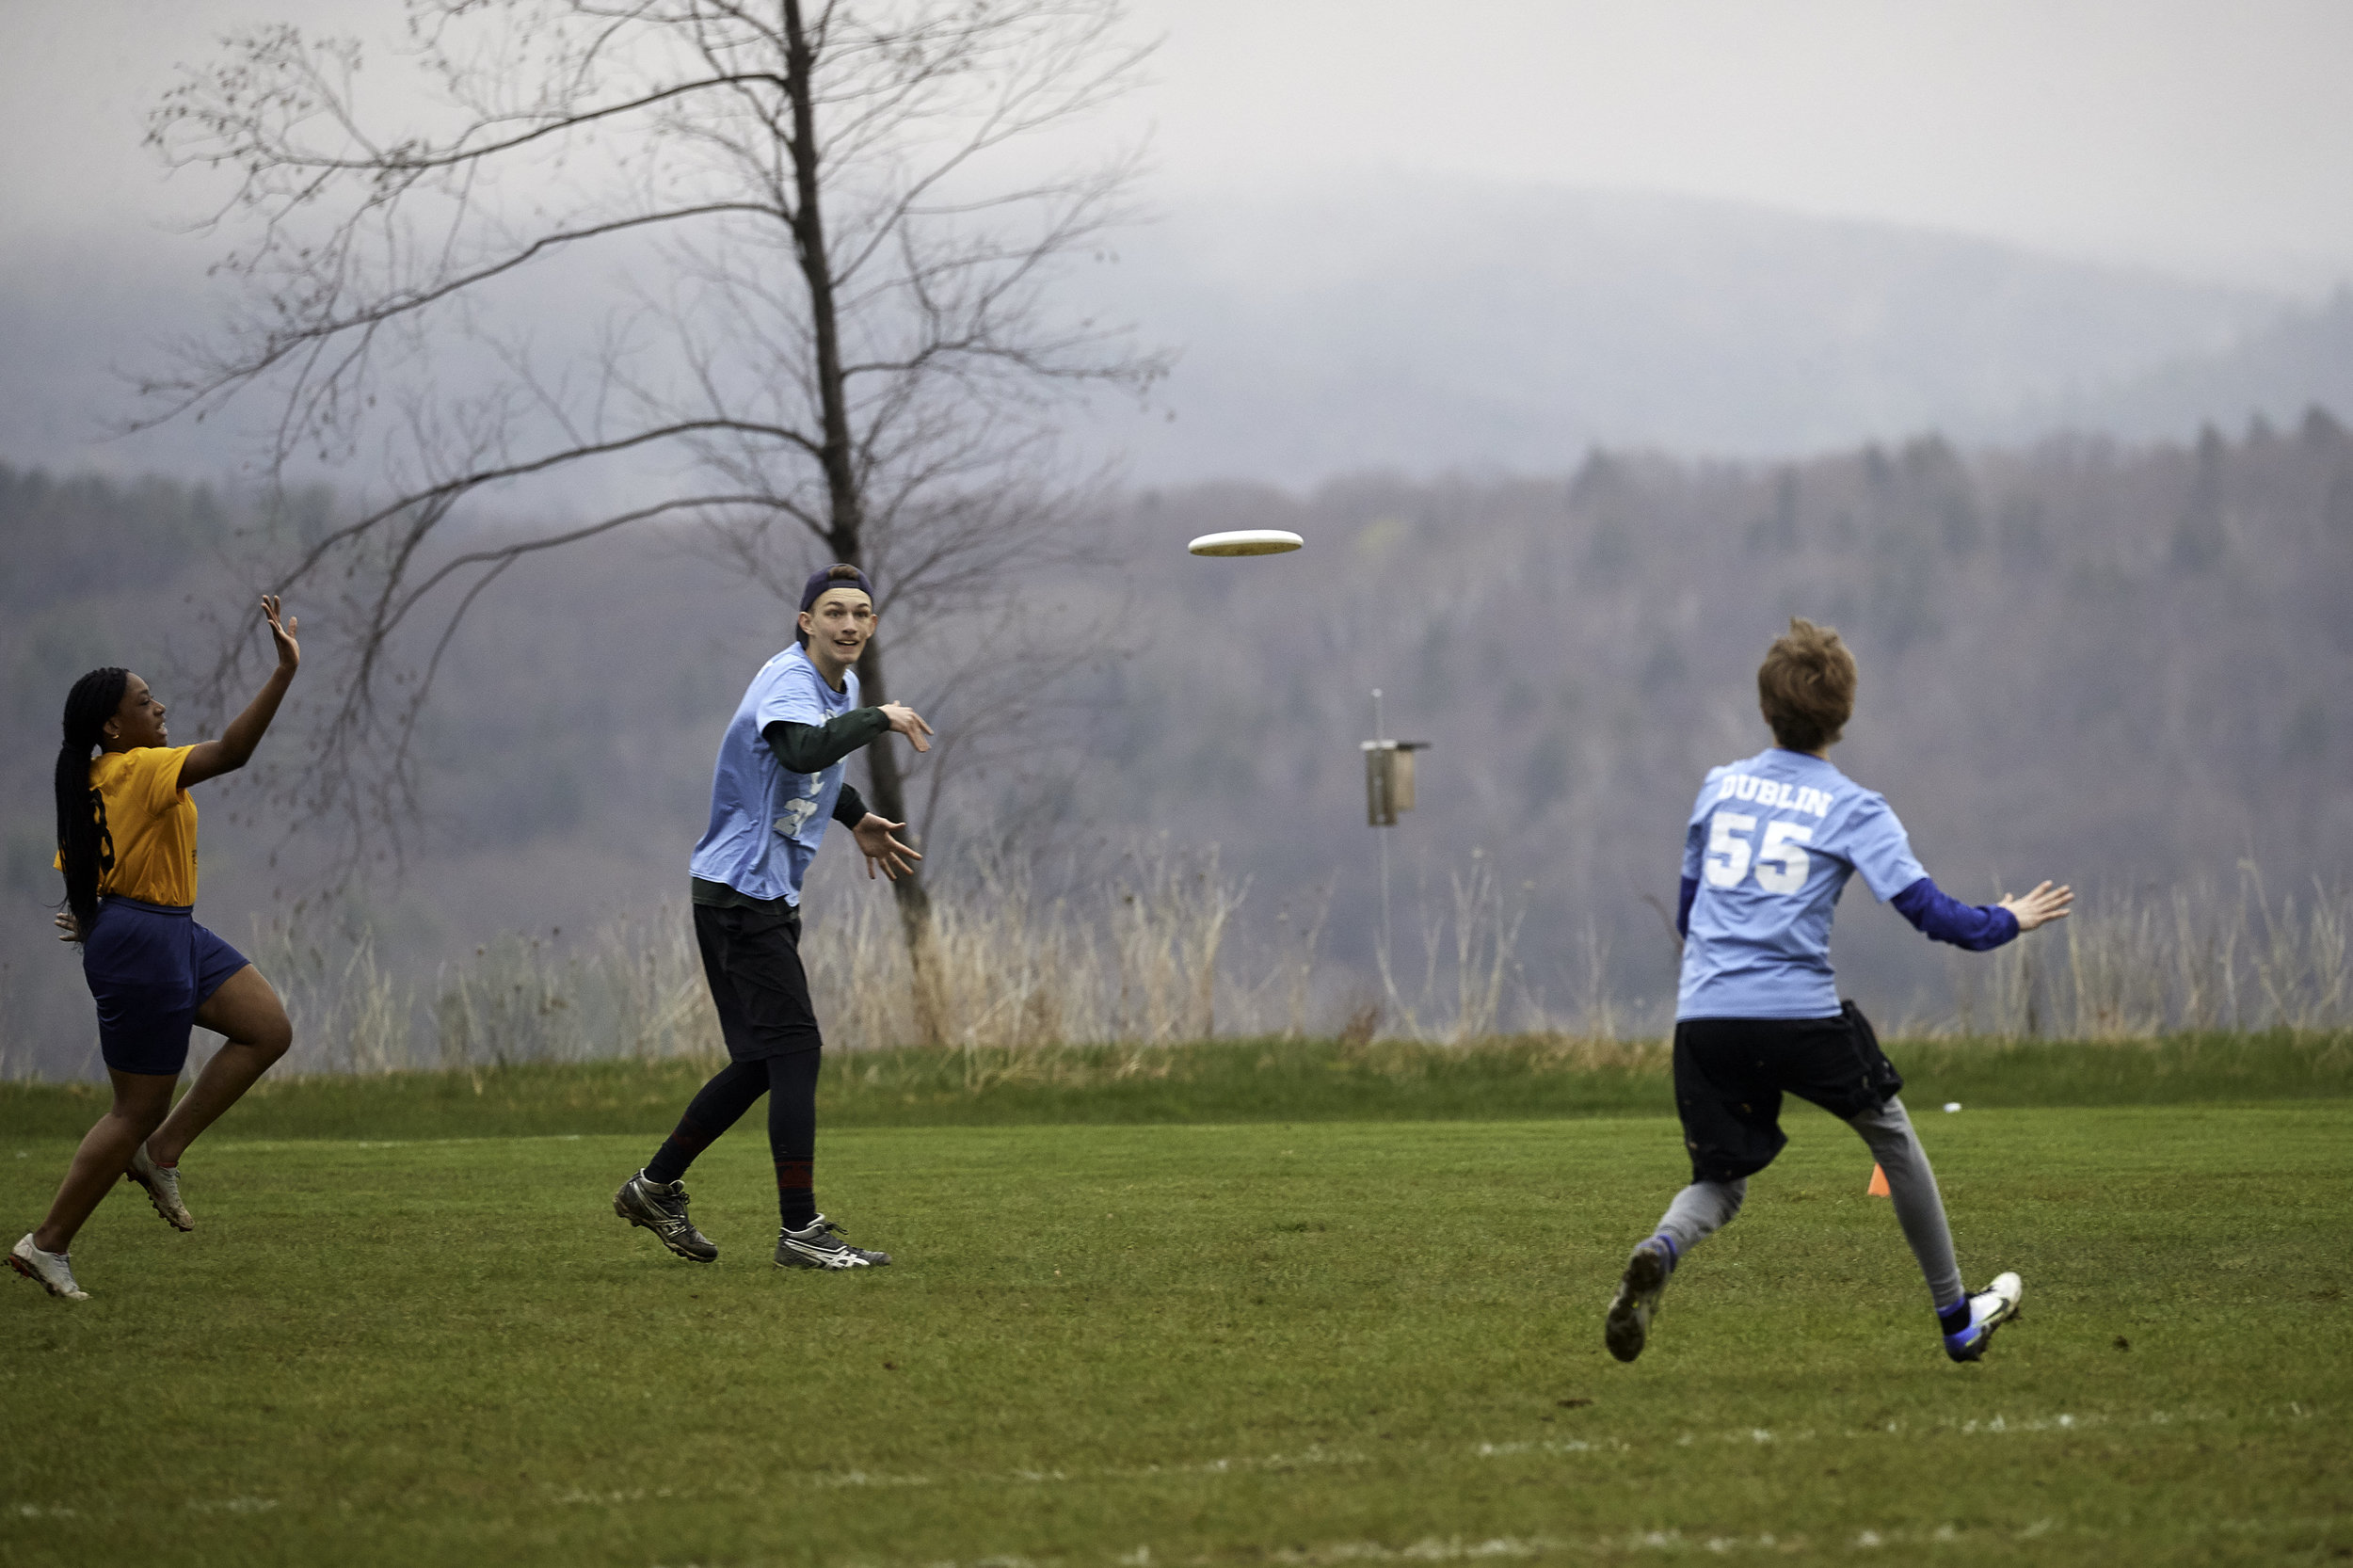 Ultimate Frisbee vs. Eagle Hill School - May 3, 2019 - 188520.jpg